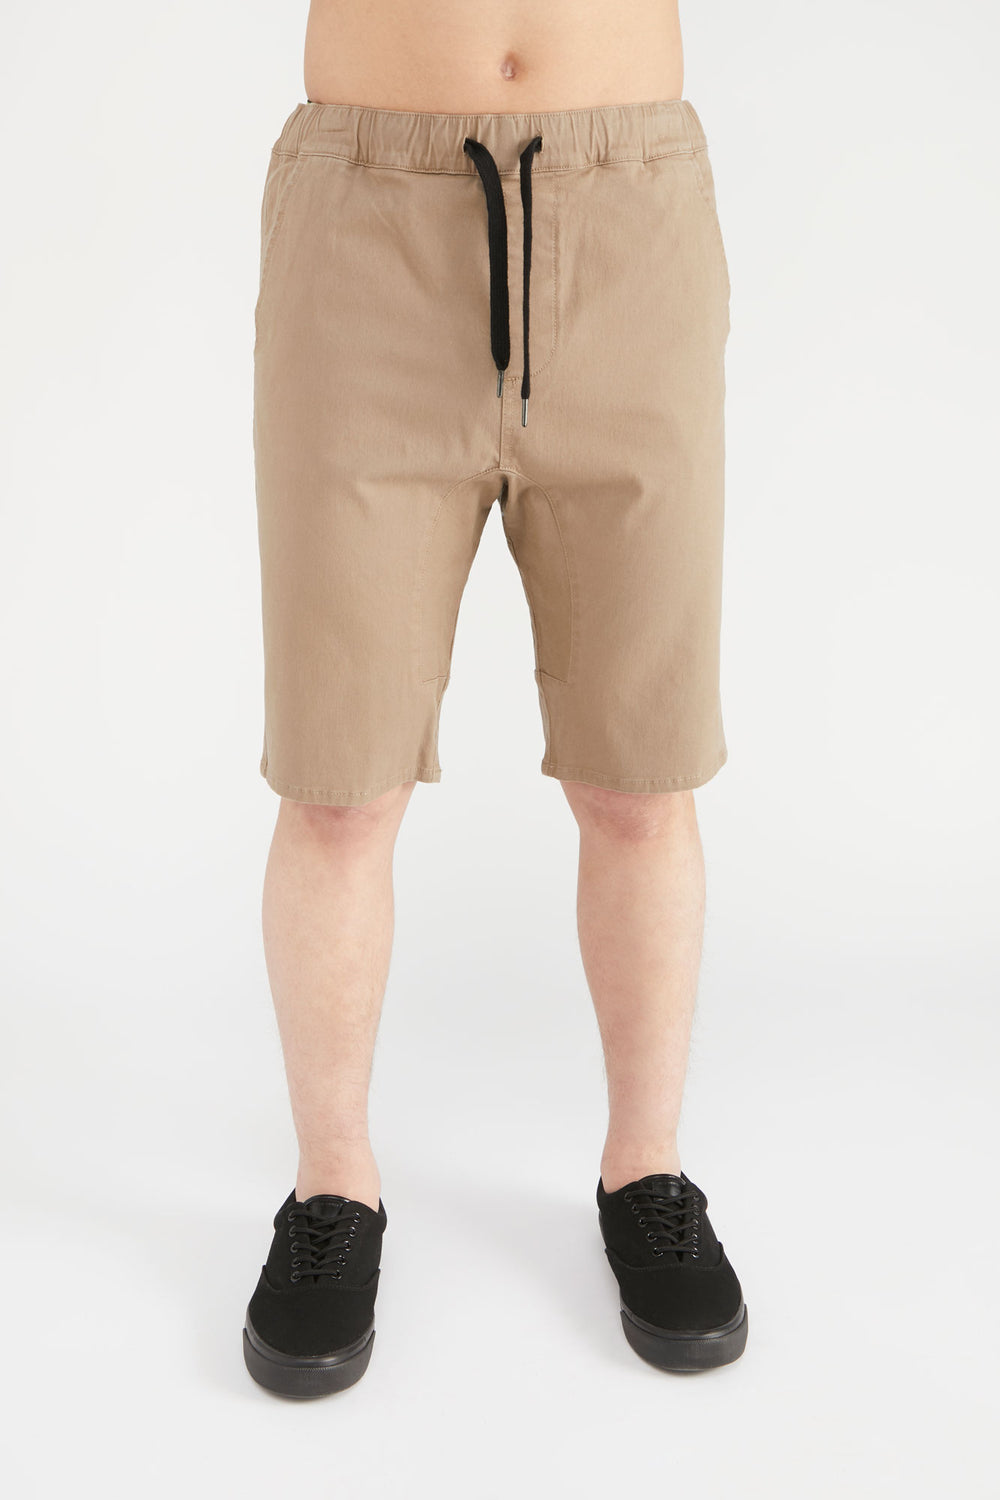 West49 Mens Solid Twill Jogger Short Sand